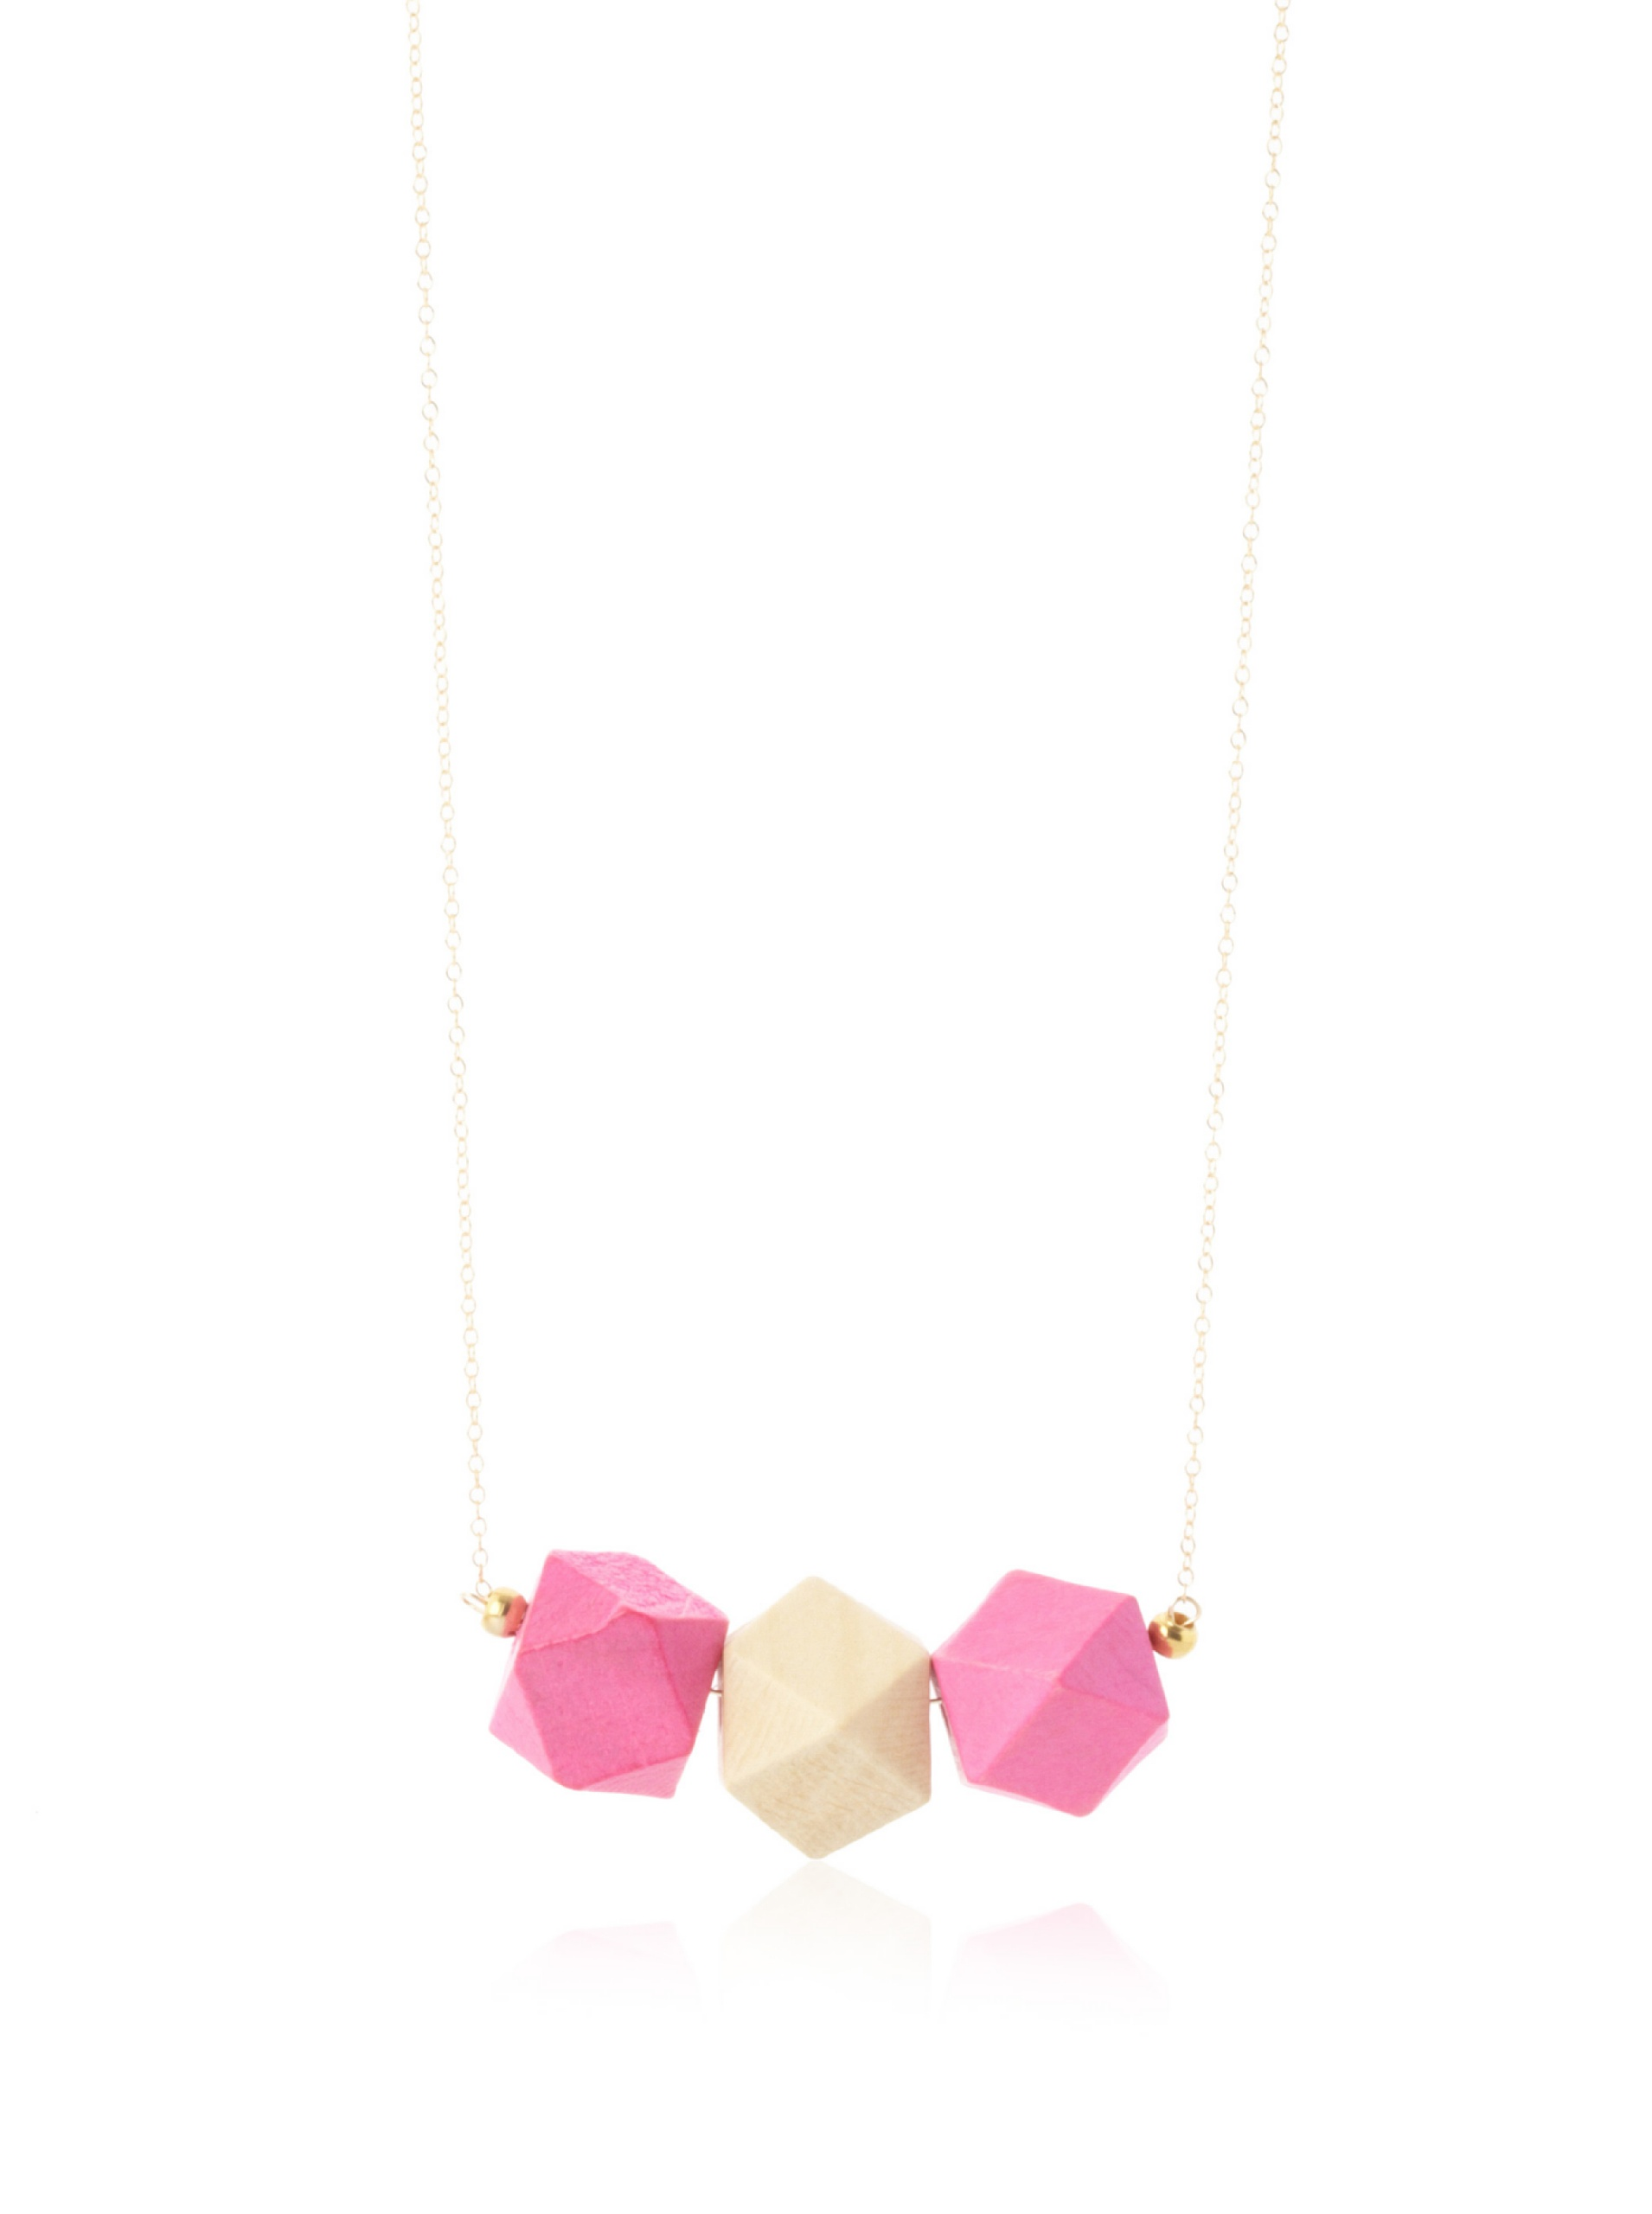 gorjana Color Block Necklace, Pink and Gold